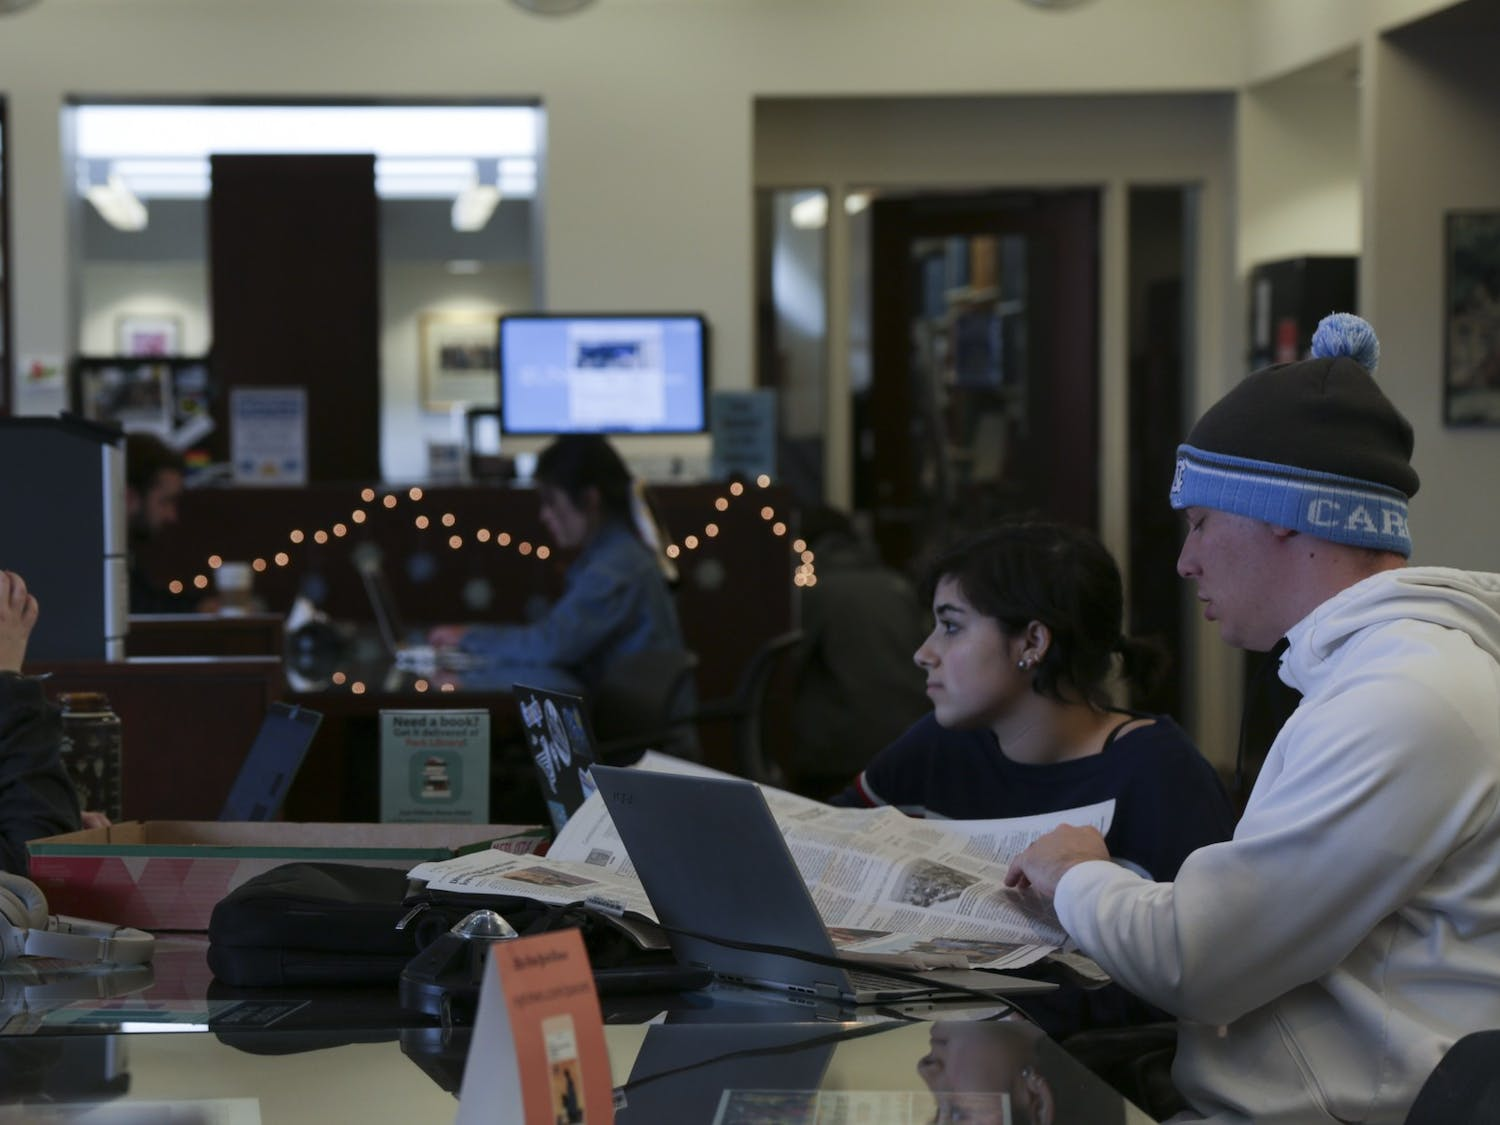 UNC-Chapel Hill students prepare for exams in Park Library on Dec, 3, 2019.